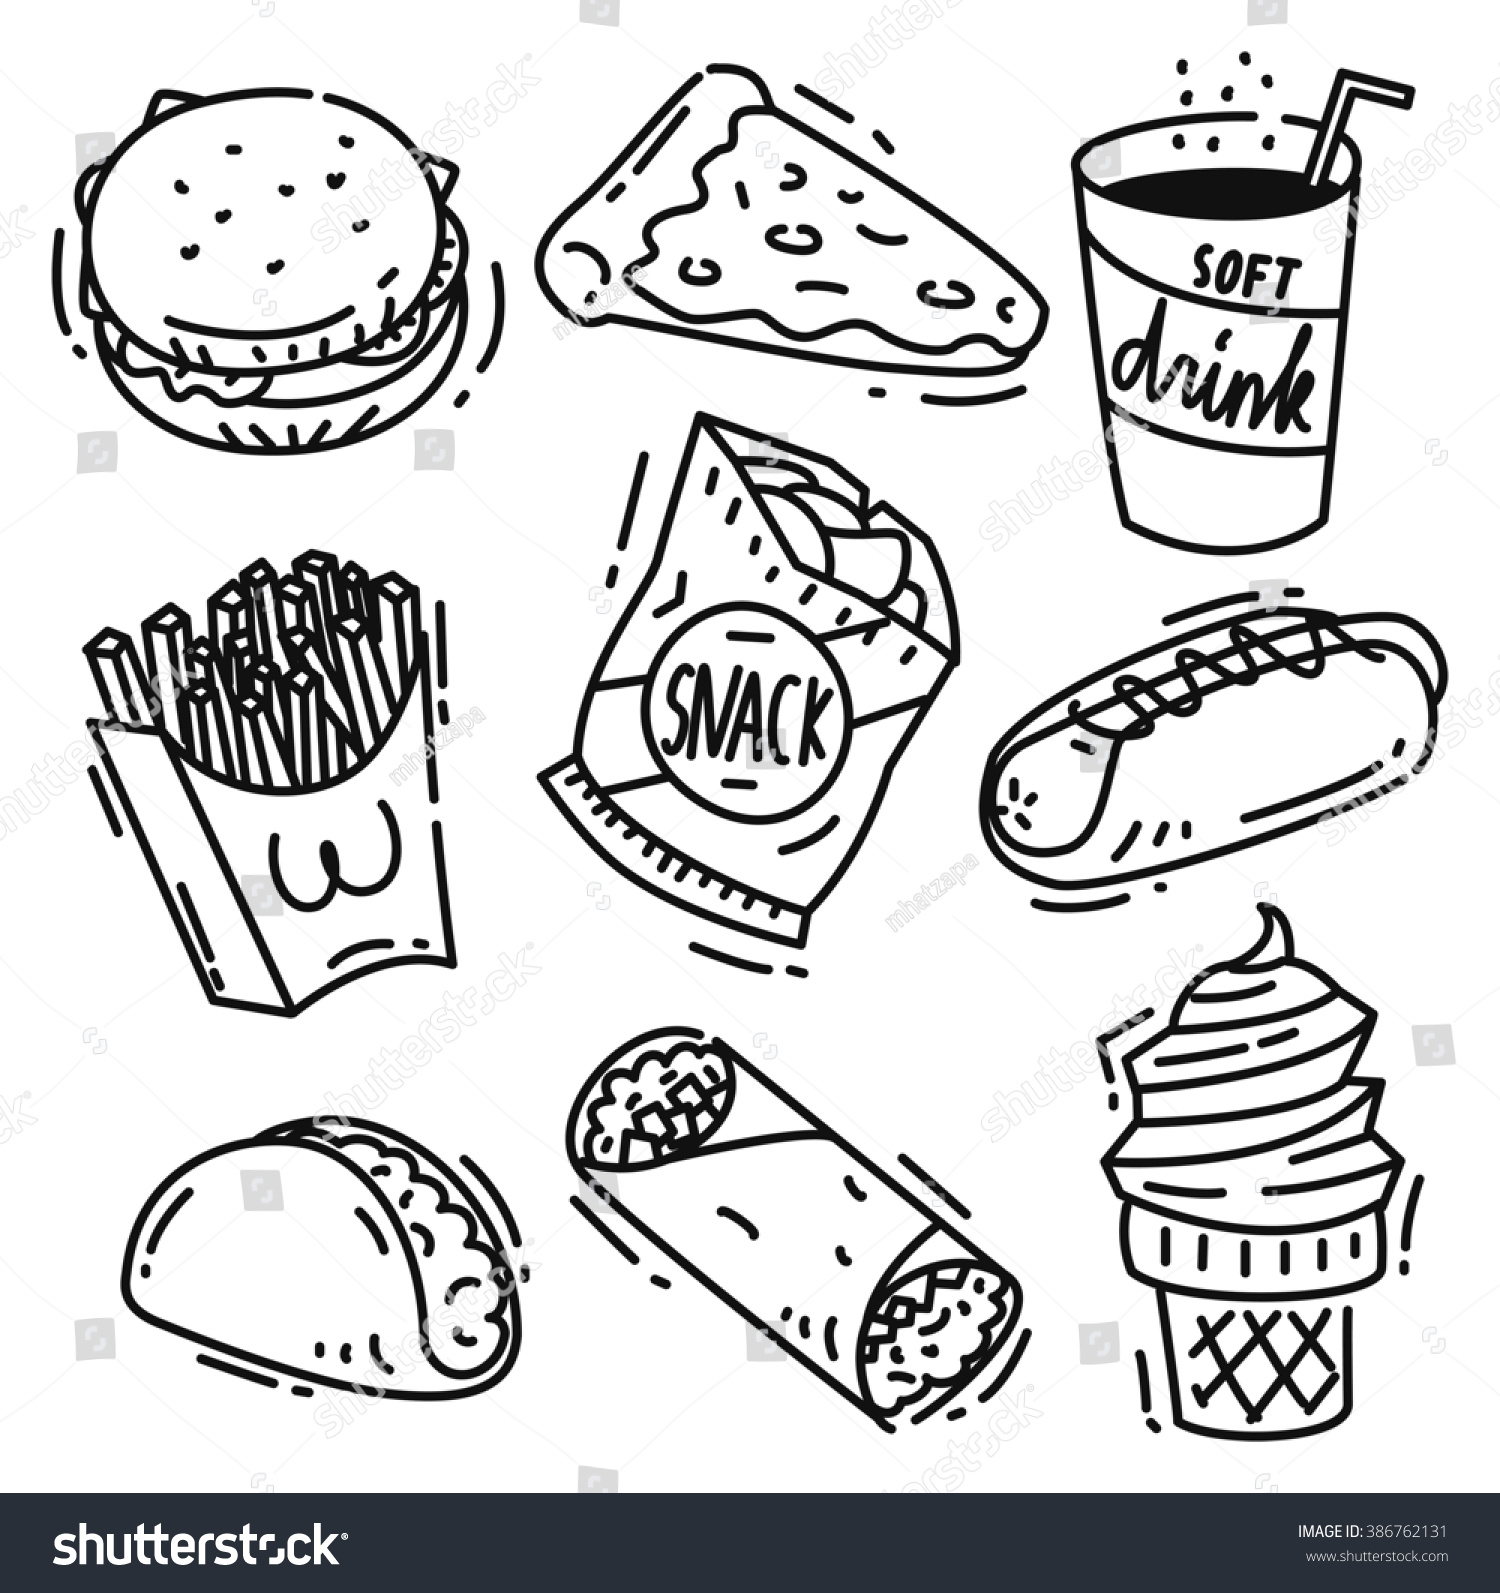 Royalty-free Set of junk food icon doodle isolated